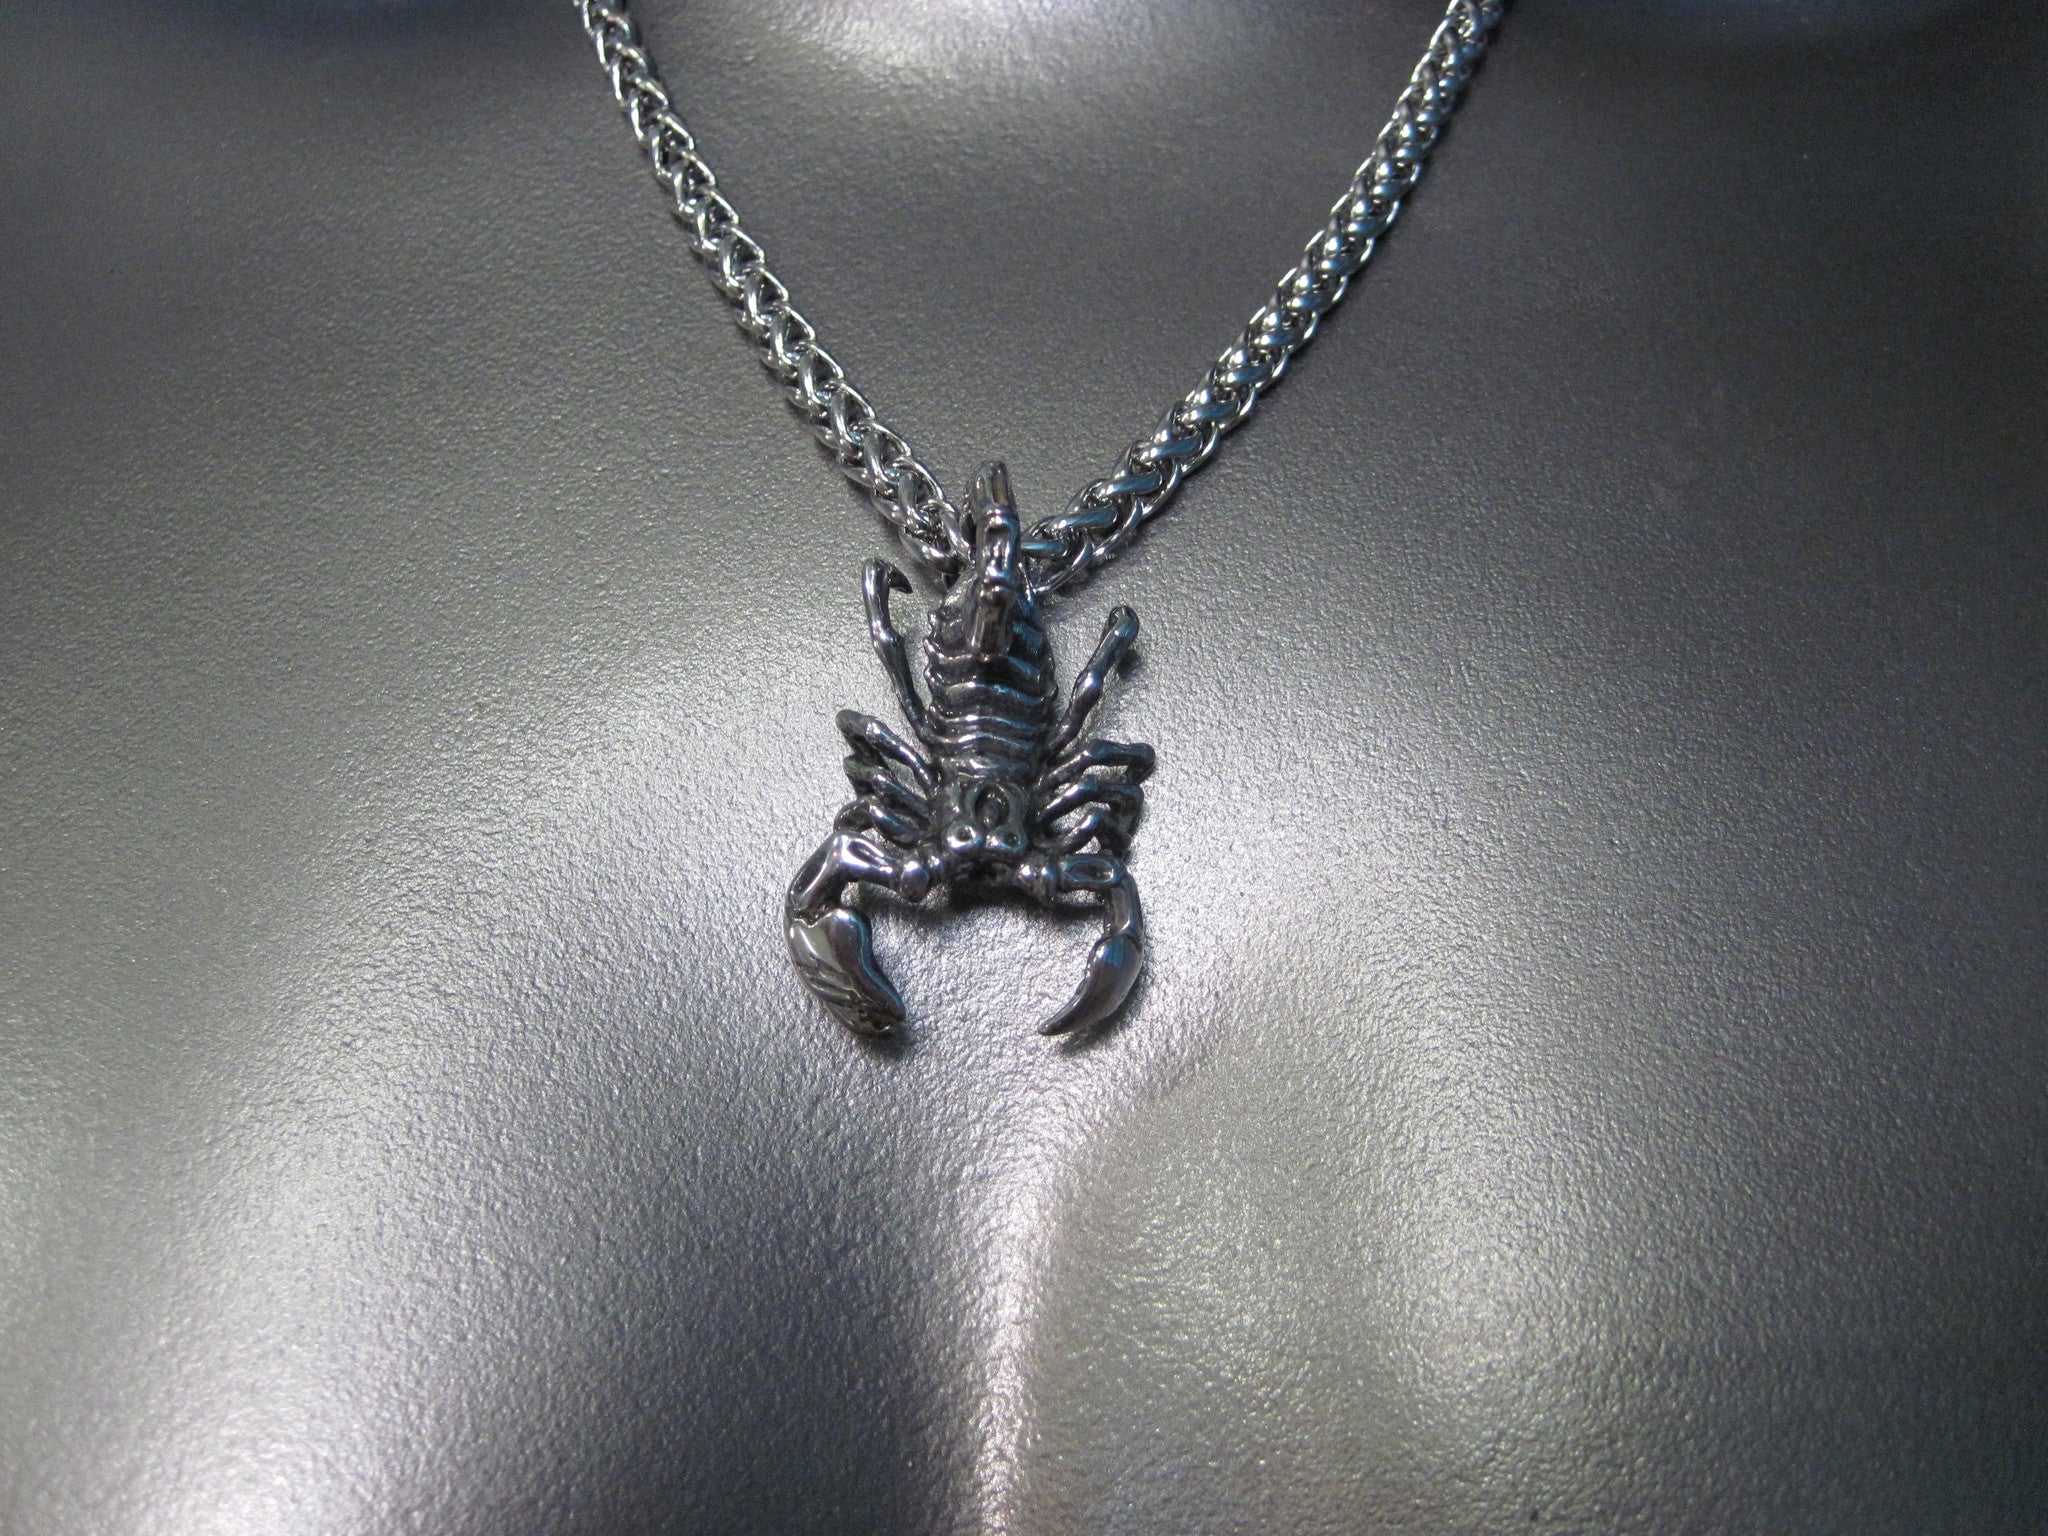 ROUND STAINLESS STEEL CHAIN NECKLACE WITH HEAVYWEIGHT SCORPION PENDANT. by nyet jewelry